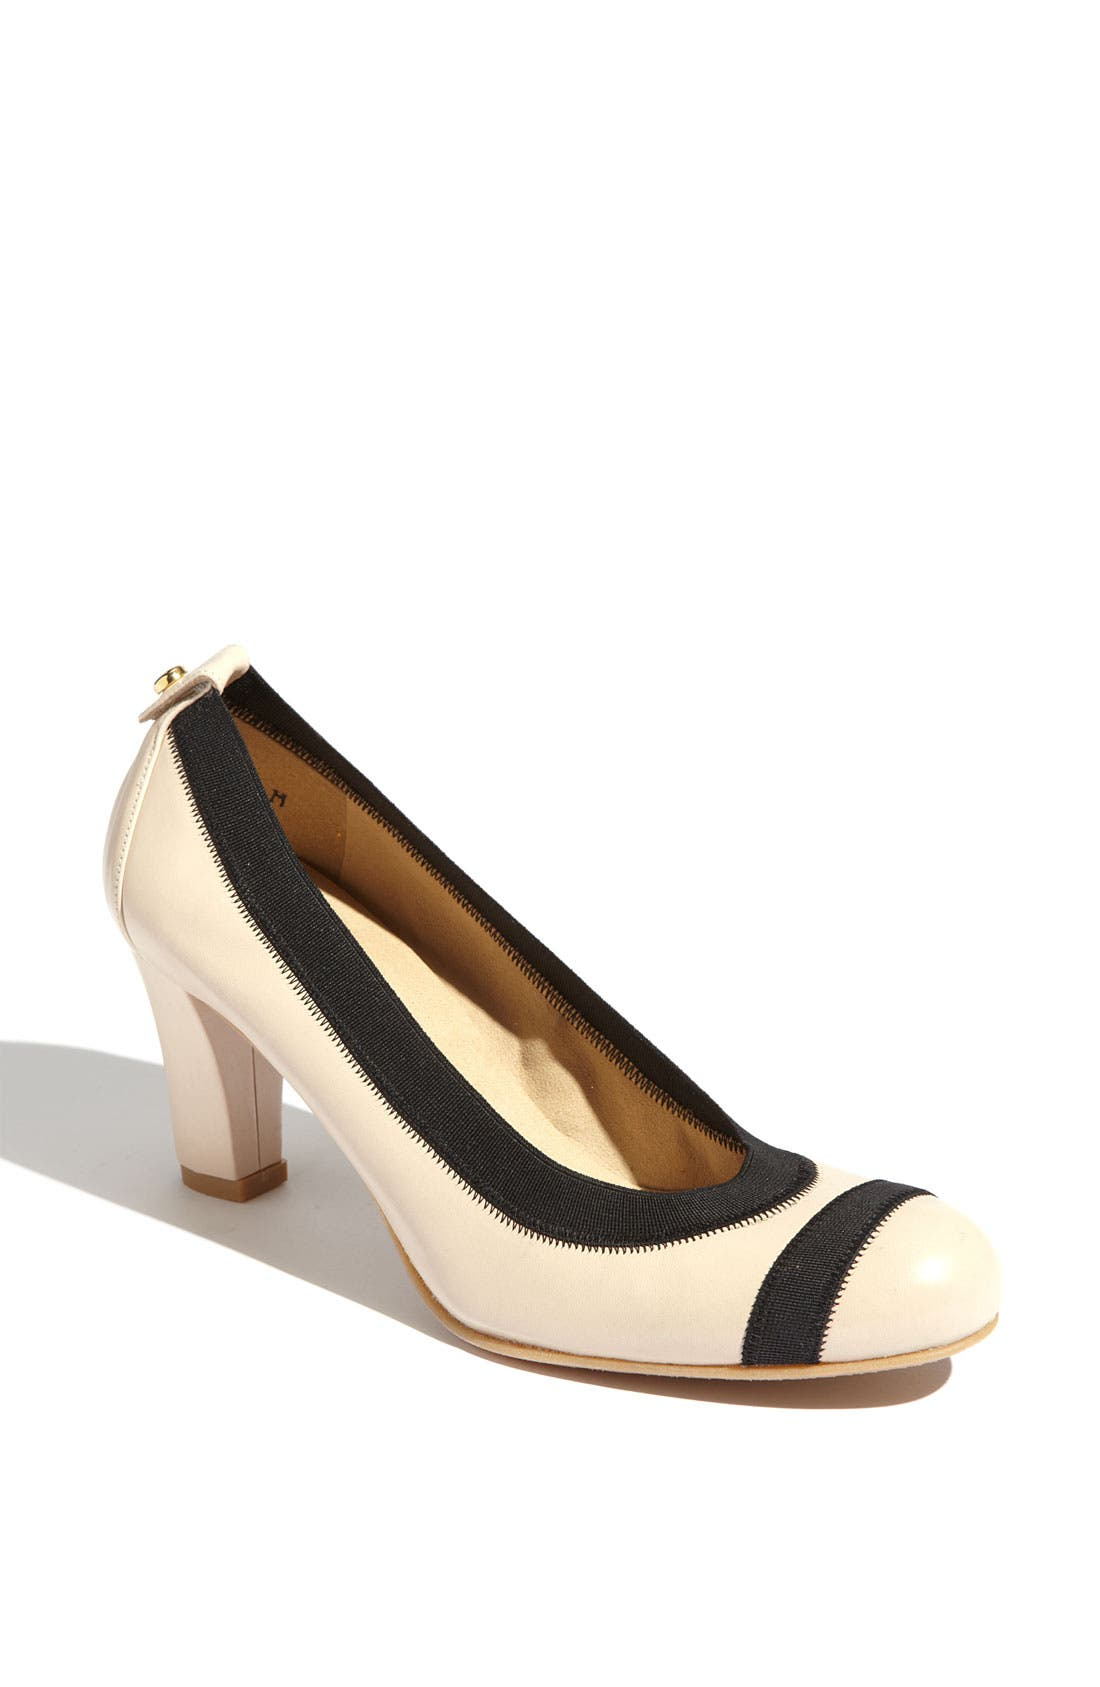 Main Image - Stuart Weitzman 'Easily' Pump